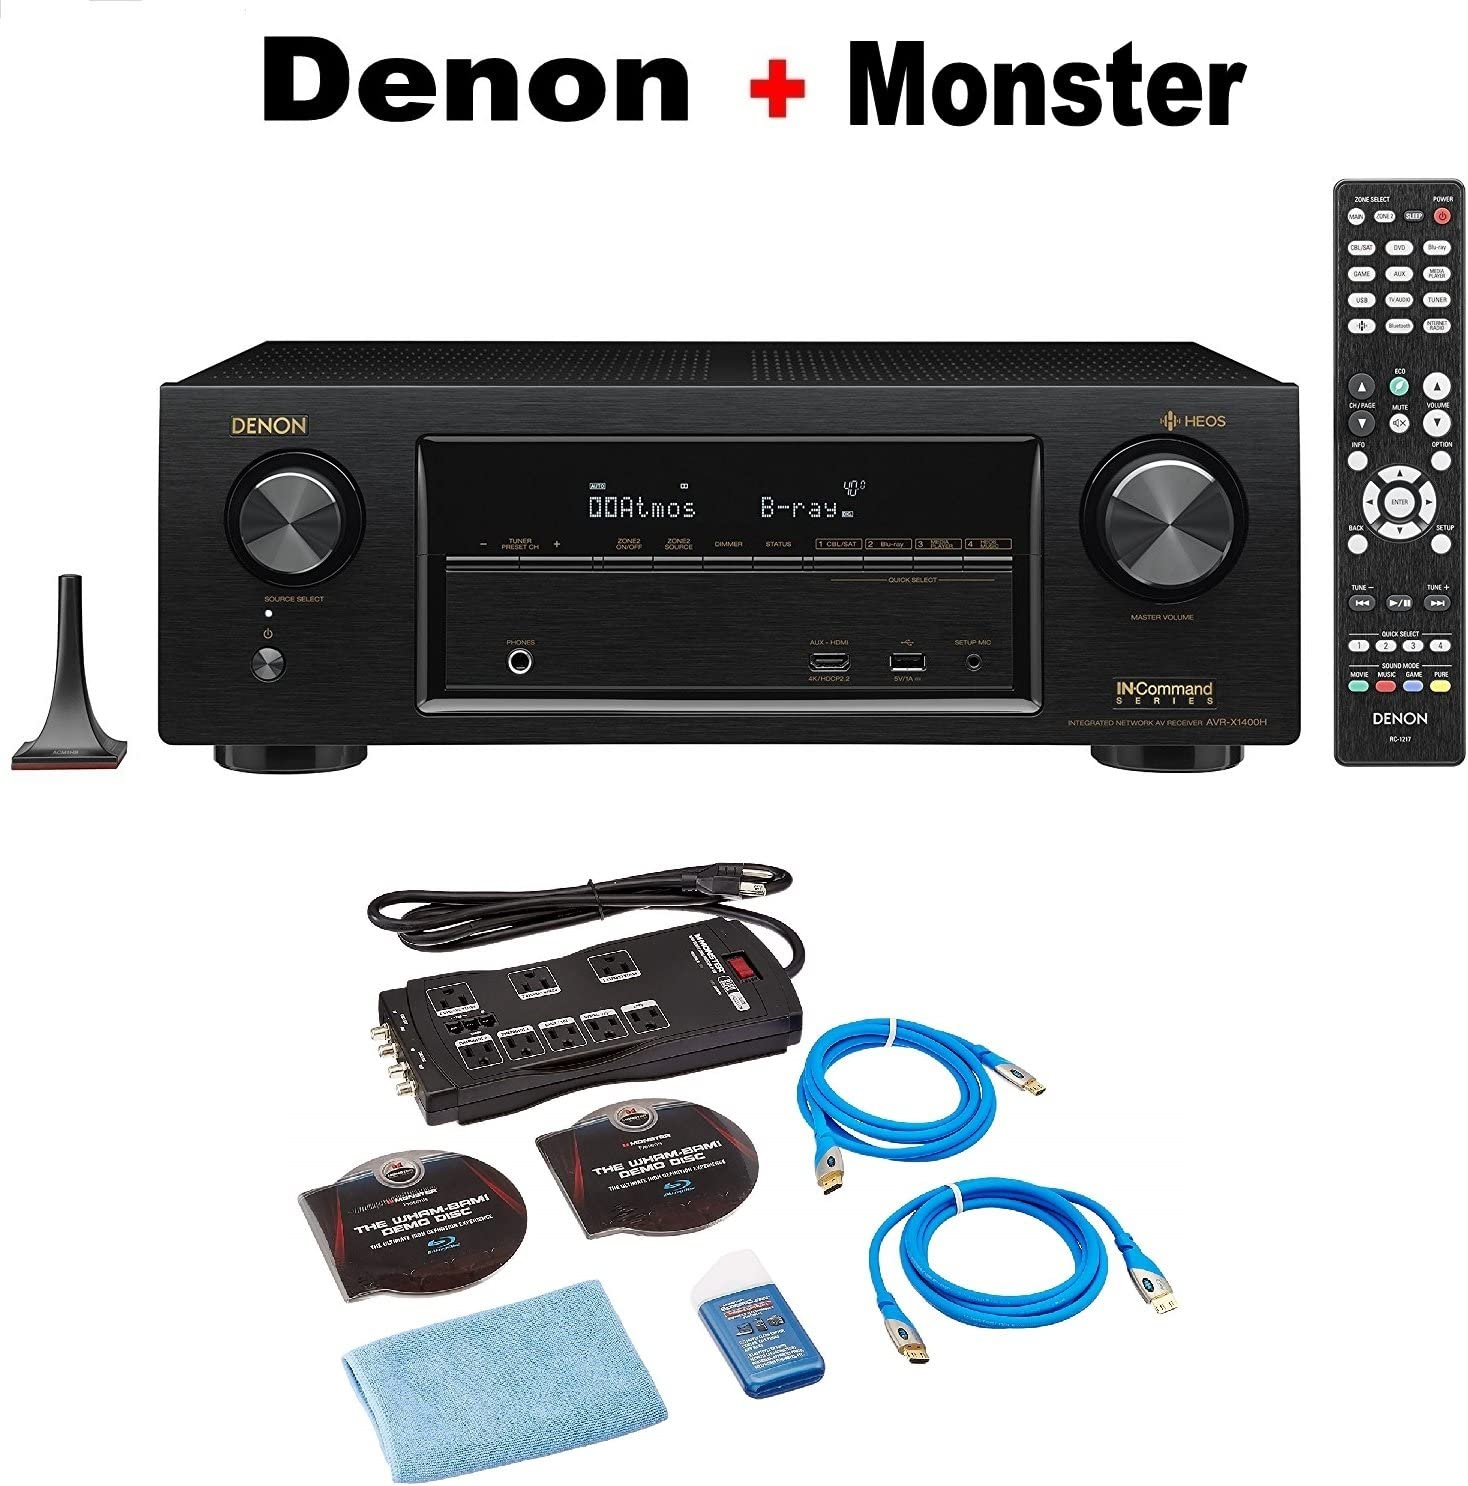 Denon AVR-X1400H 7.2 Channel Full 4K Ultra HD AV Receiver with Wi-Fi, Dolby Atmos, DTS:X, HEOS and Bluetooth + Monster Home Theater Accessory Bundle